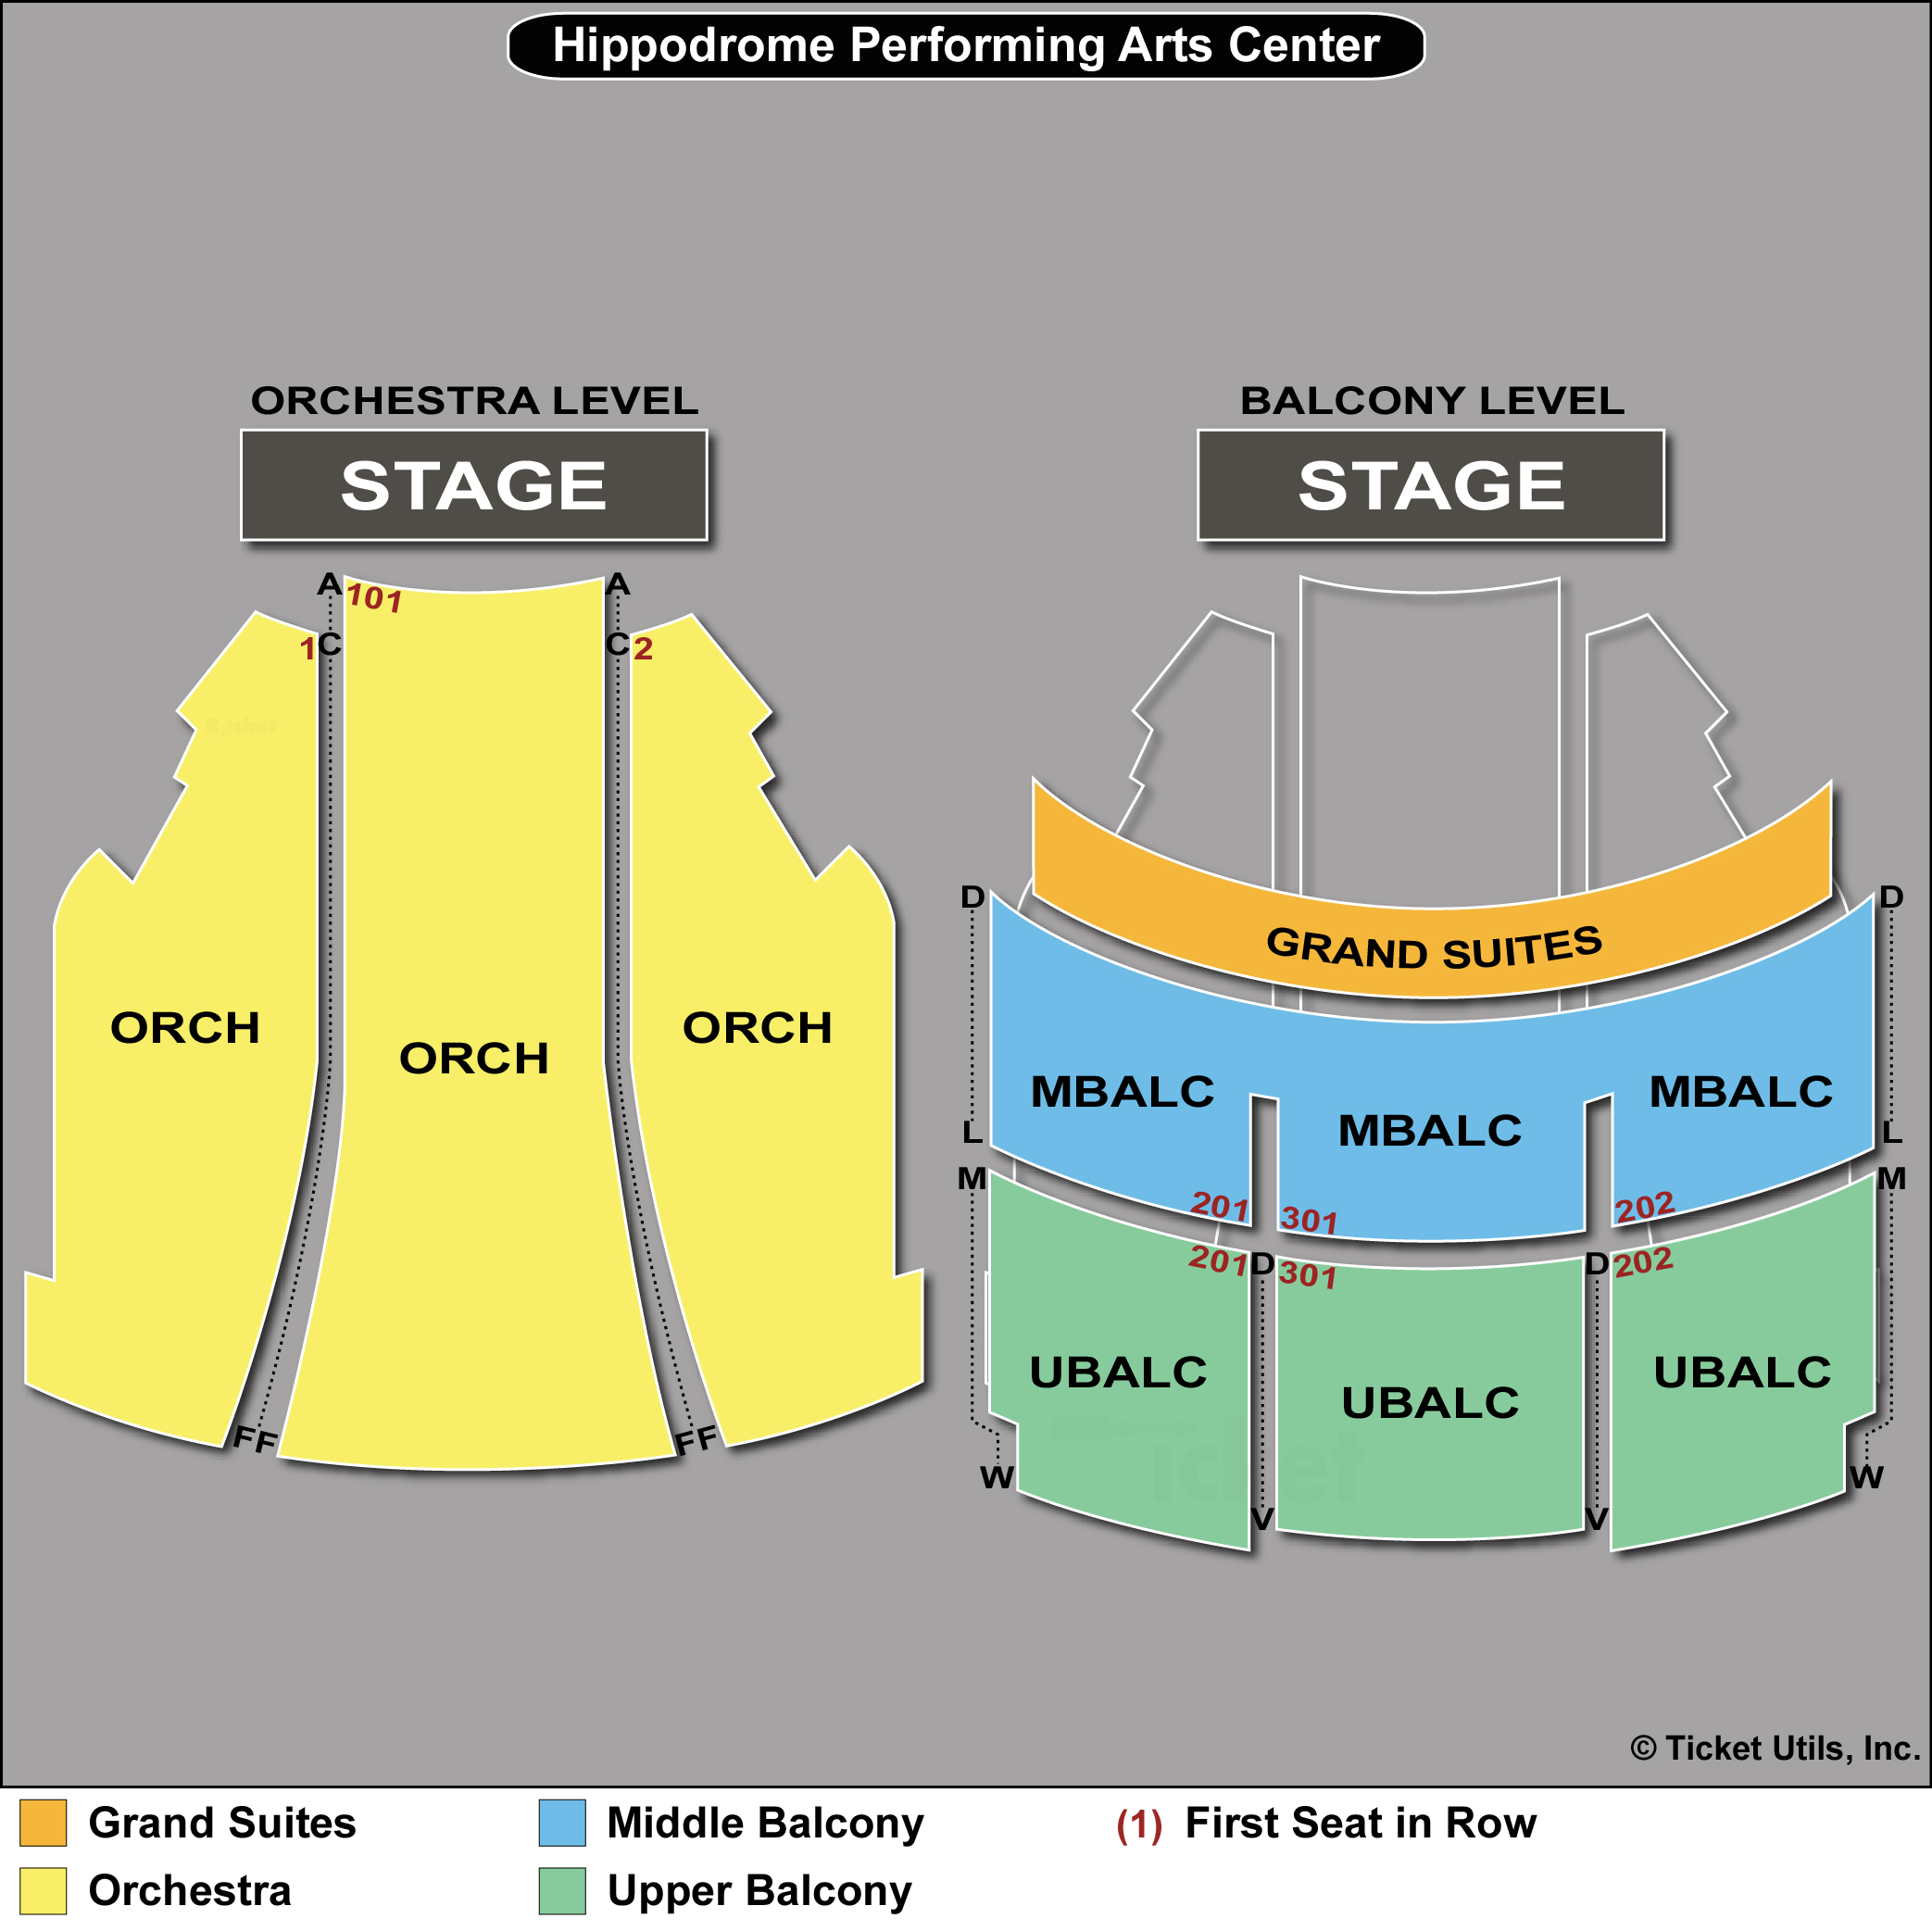 Hippodrome Theatre Seating Chart